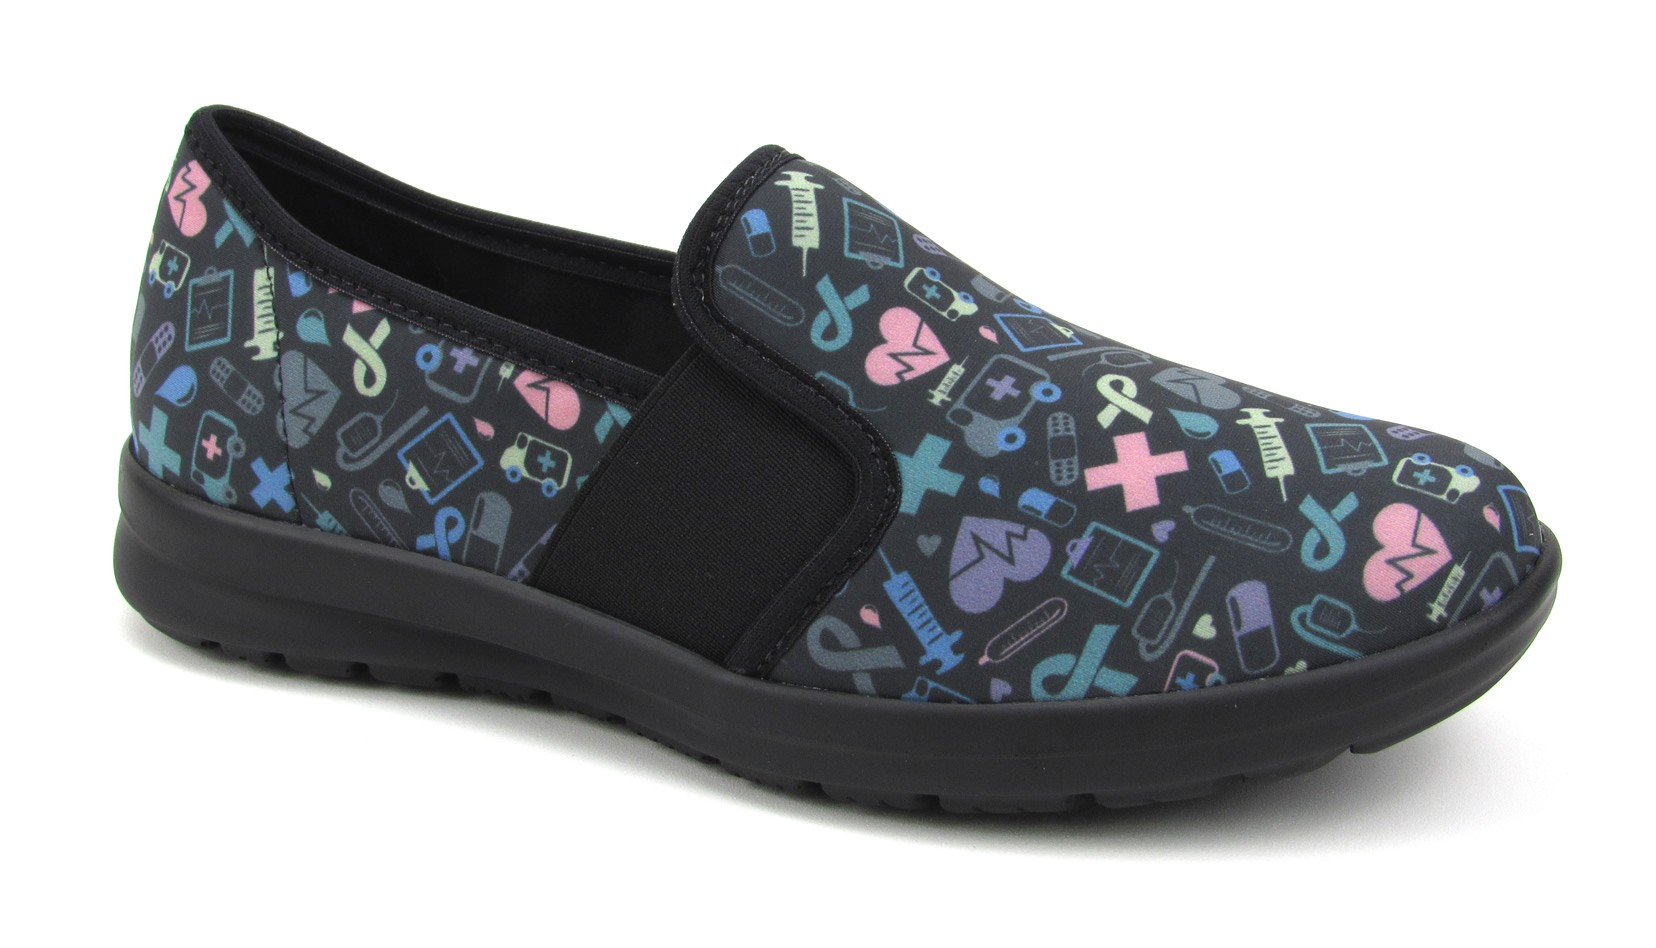 Florence Sunny - Black with Colorful Hospital Icons